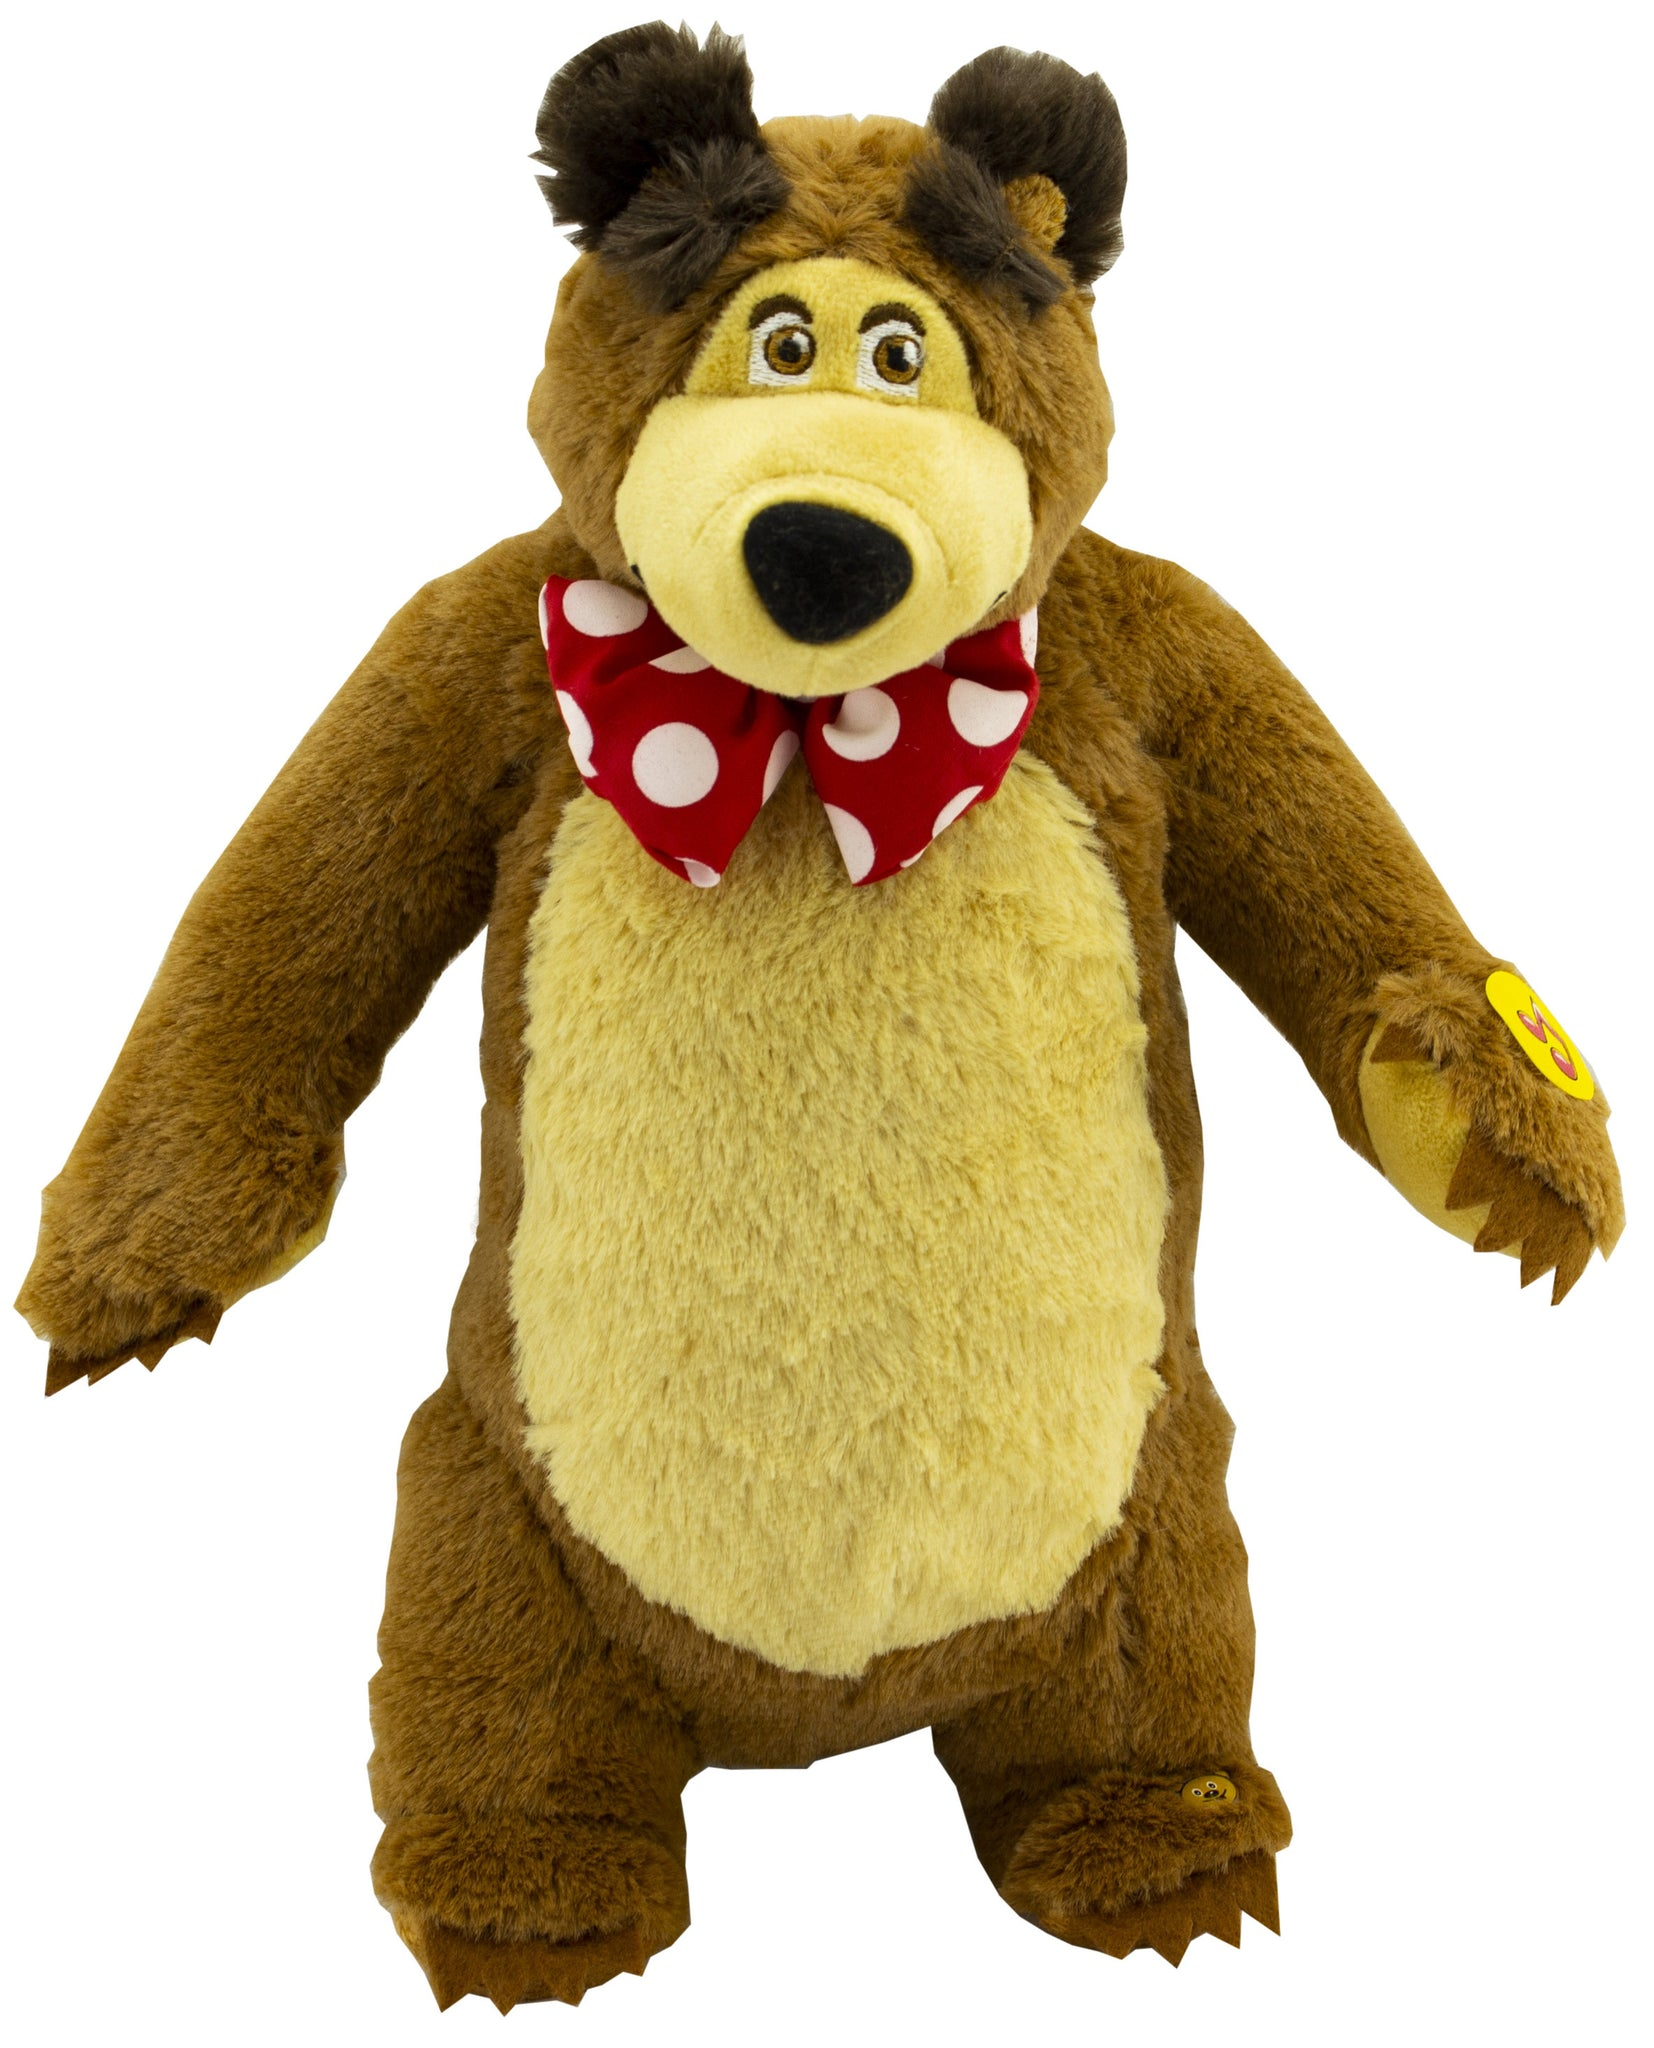 Lovely Giggle Character from The Cartoon Funny Soft Toy Teddy Bear Stuffed Animal Plush Masha y el OSO